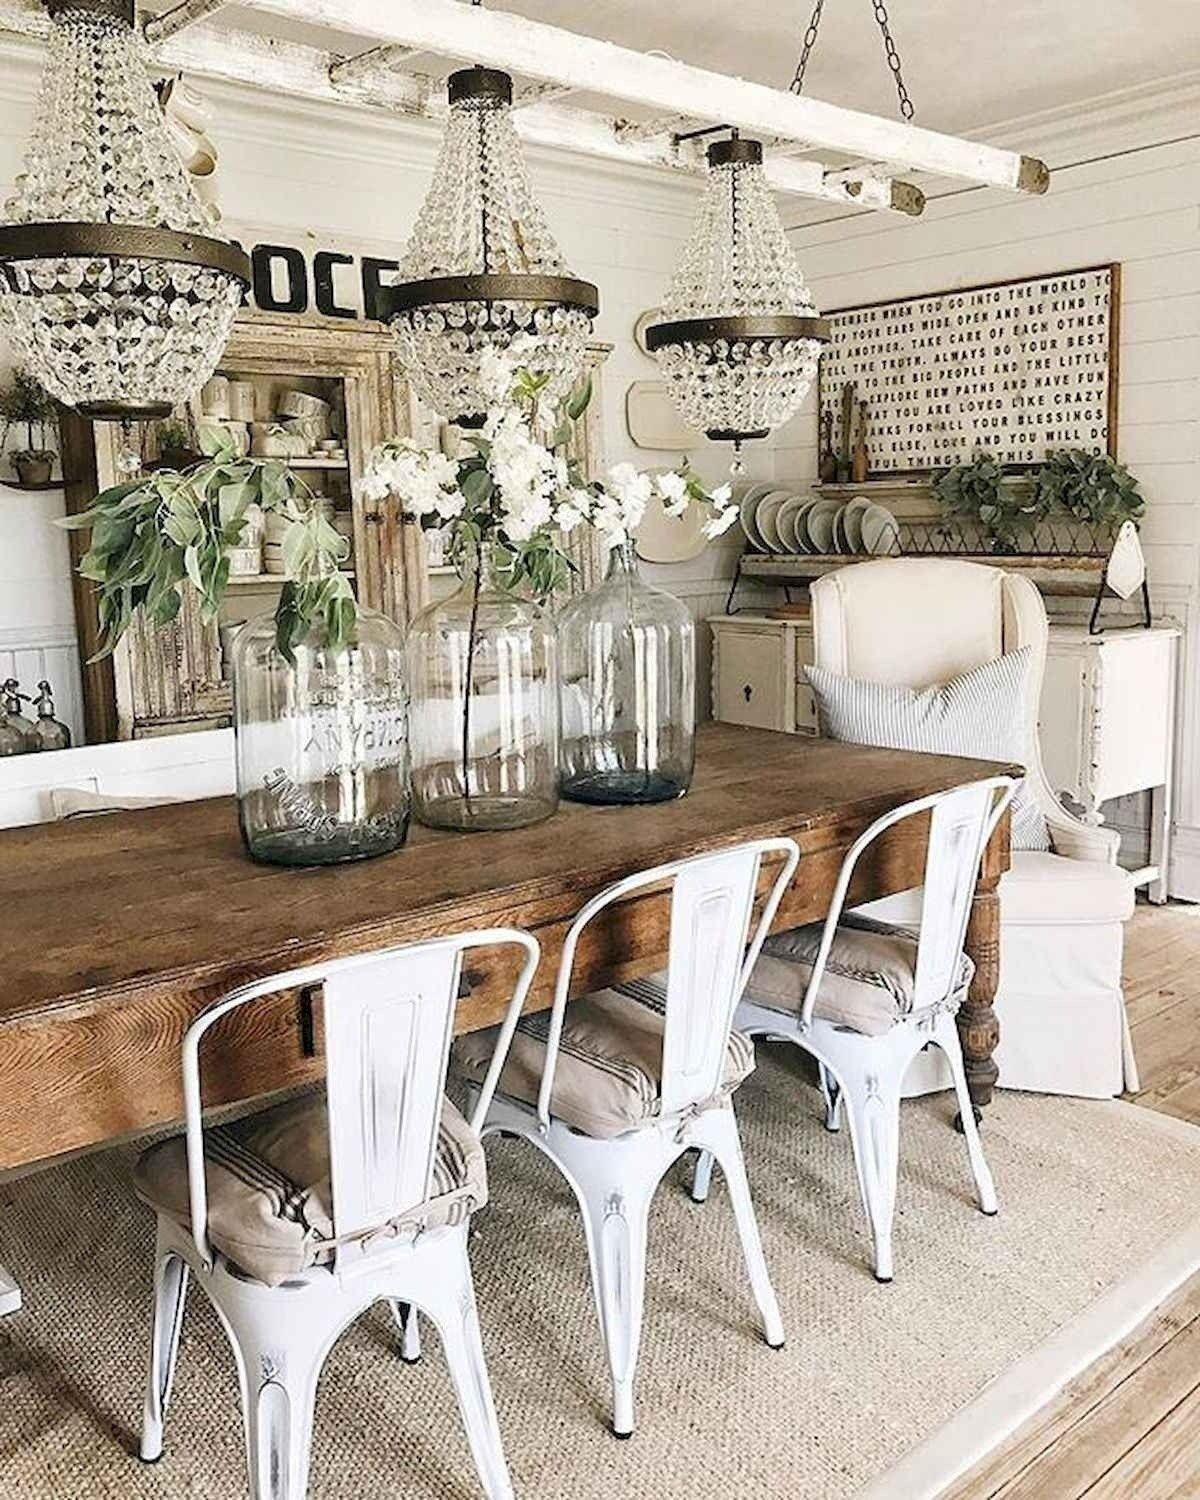 60 Modern Farmhouse Dining Room Table Ideas Decor And Makeover Farmhouse 60 Modern Farmhouse Dinin Di 2020 Ide Dekorasi Kamar Desain Interior Desain Interior Rumah